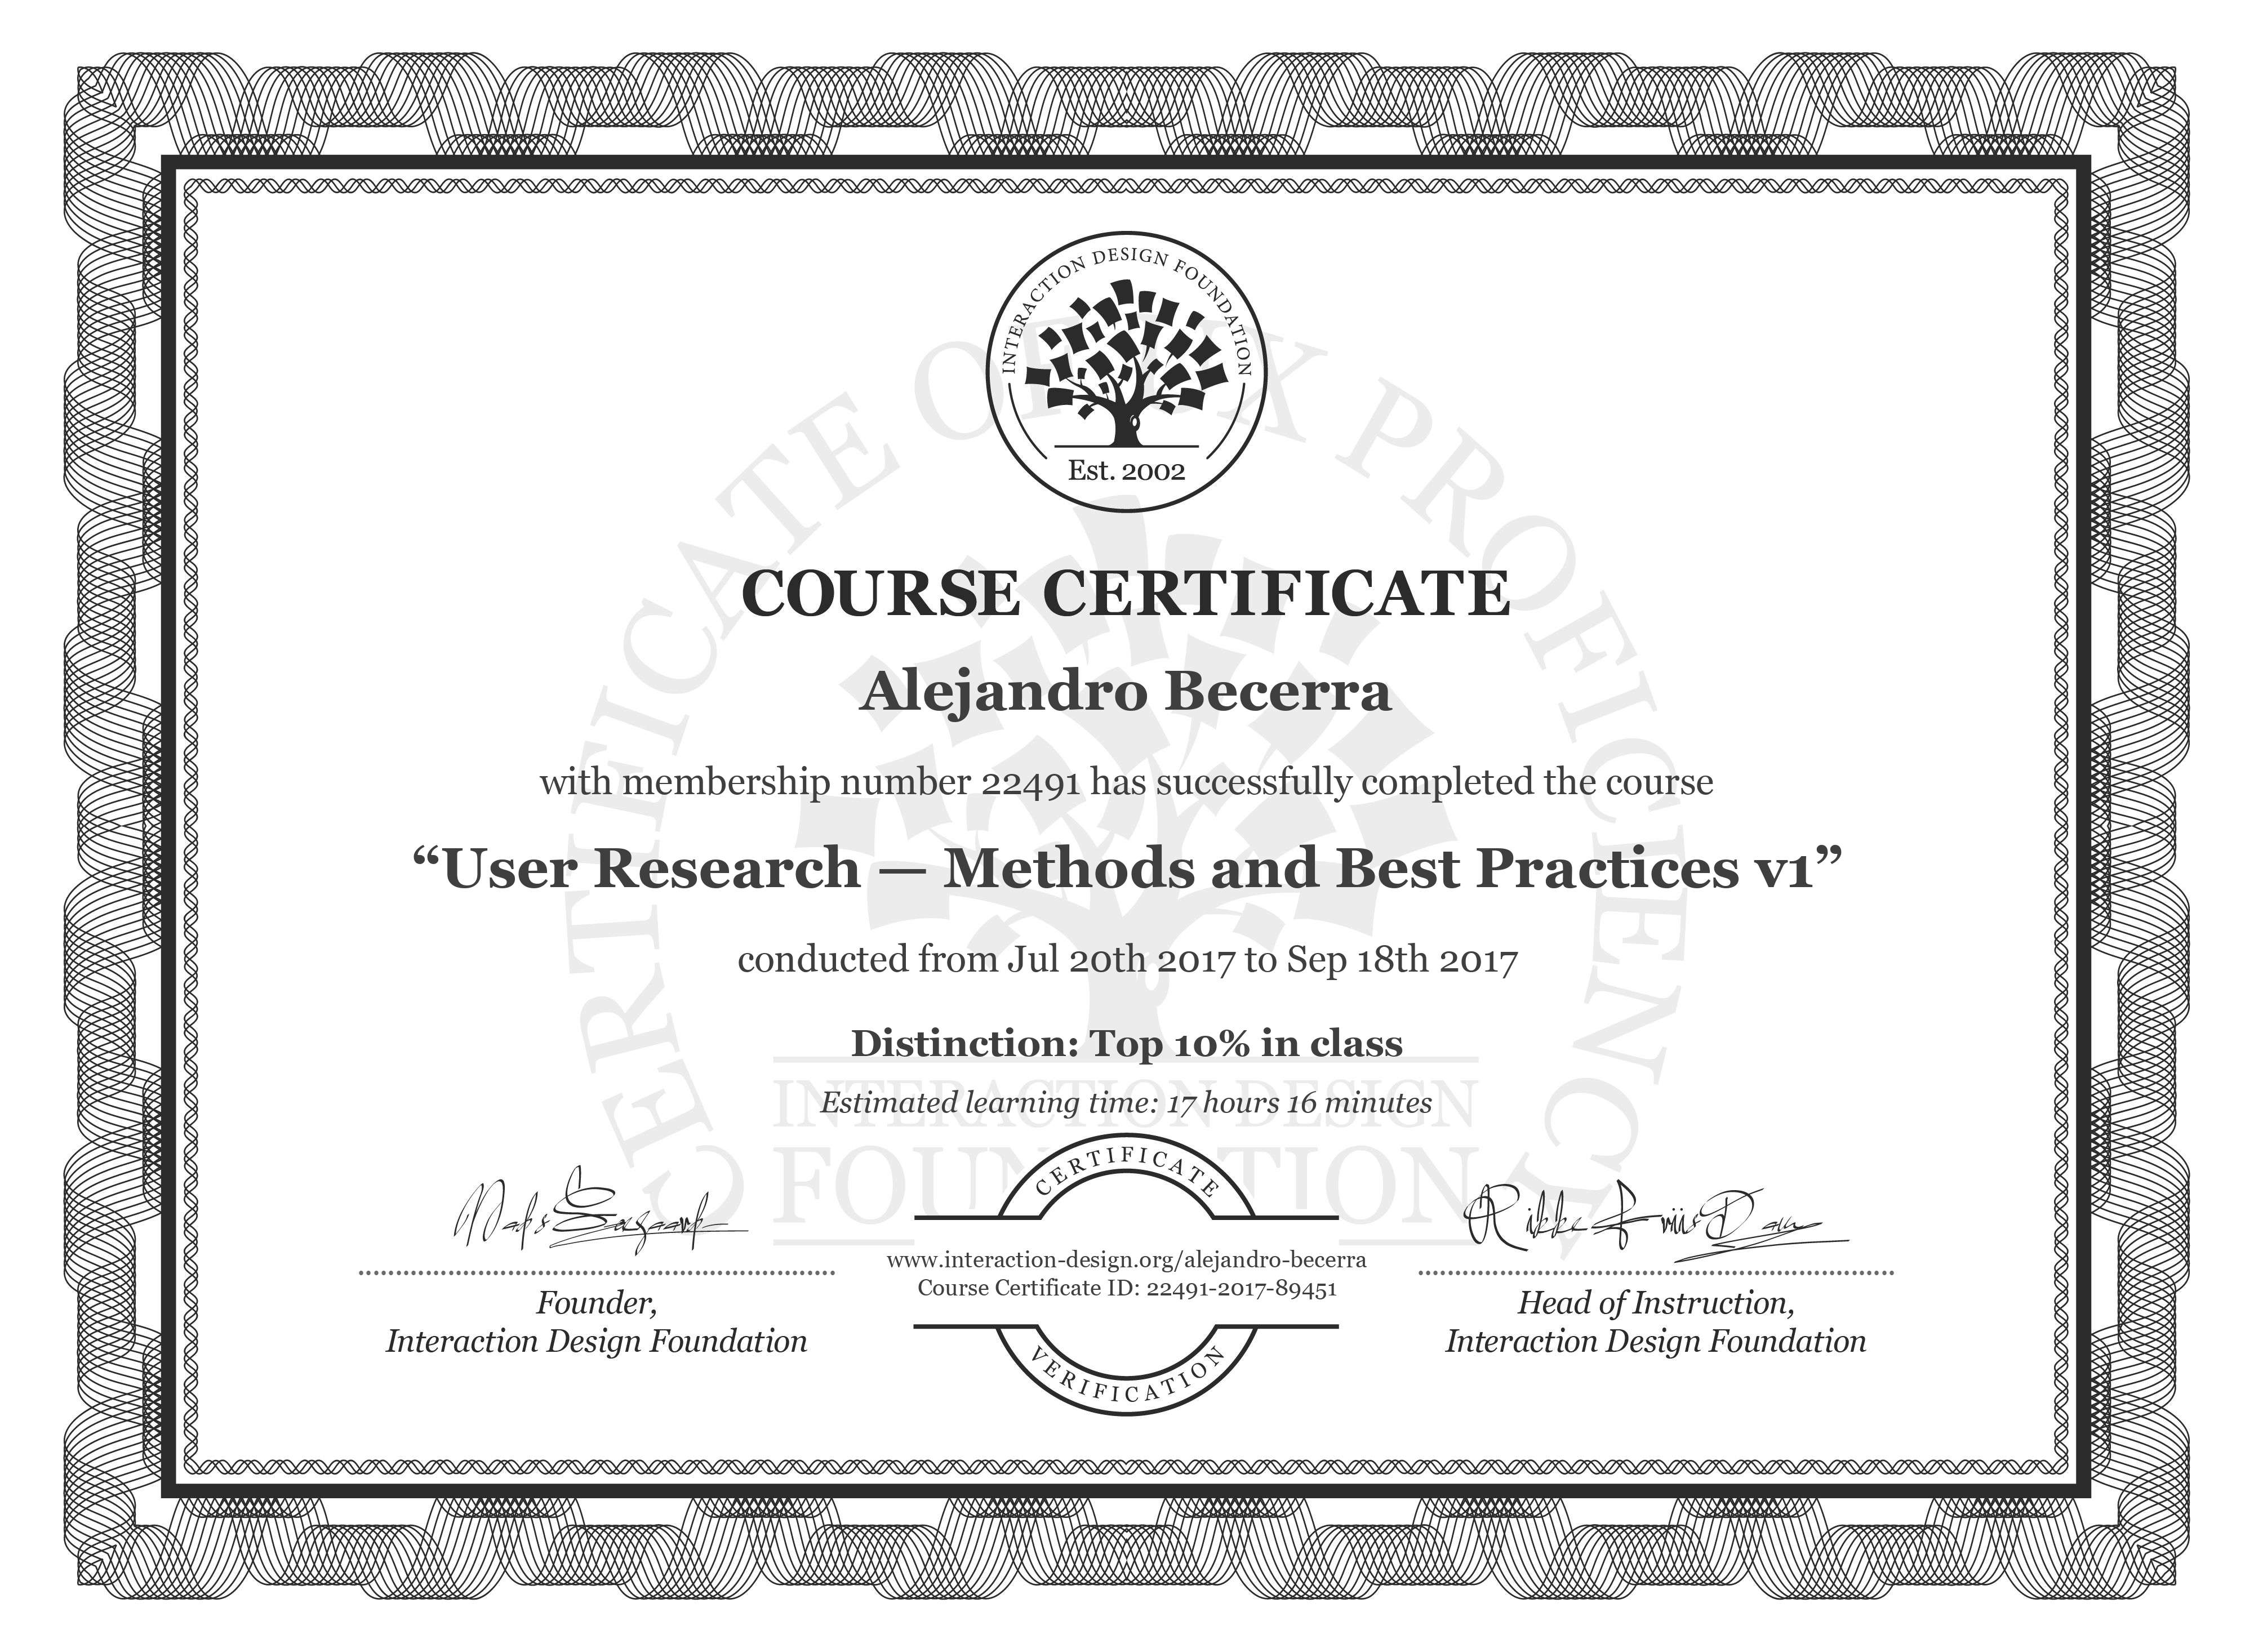 Alejandro Becerra: Course Certificate - User Research — Methods and Best Practices